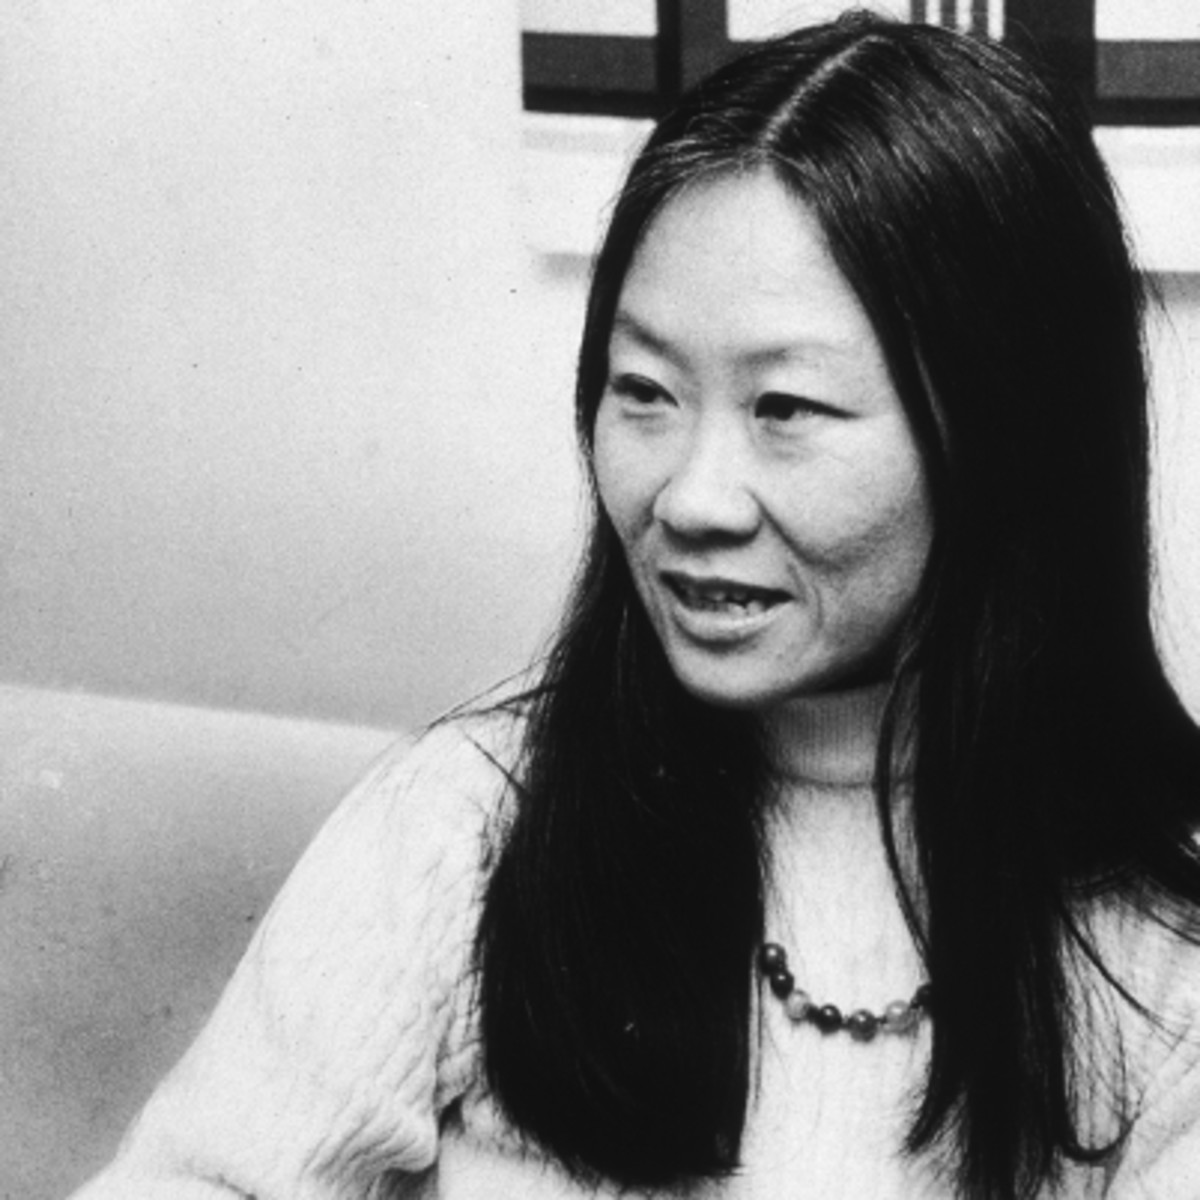 hong kingston no name woman essay No name woman research papers research papers based on no name woman can be custom written and ordered to focus on any aspect of the memoir by maxine hong kingston  paper masters custom writes all research project so that you can integrate any portion of kingston's work into a paper or essay.